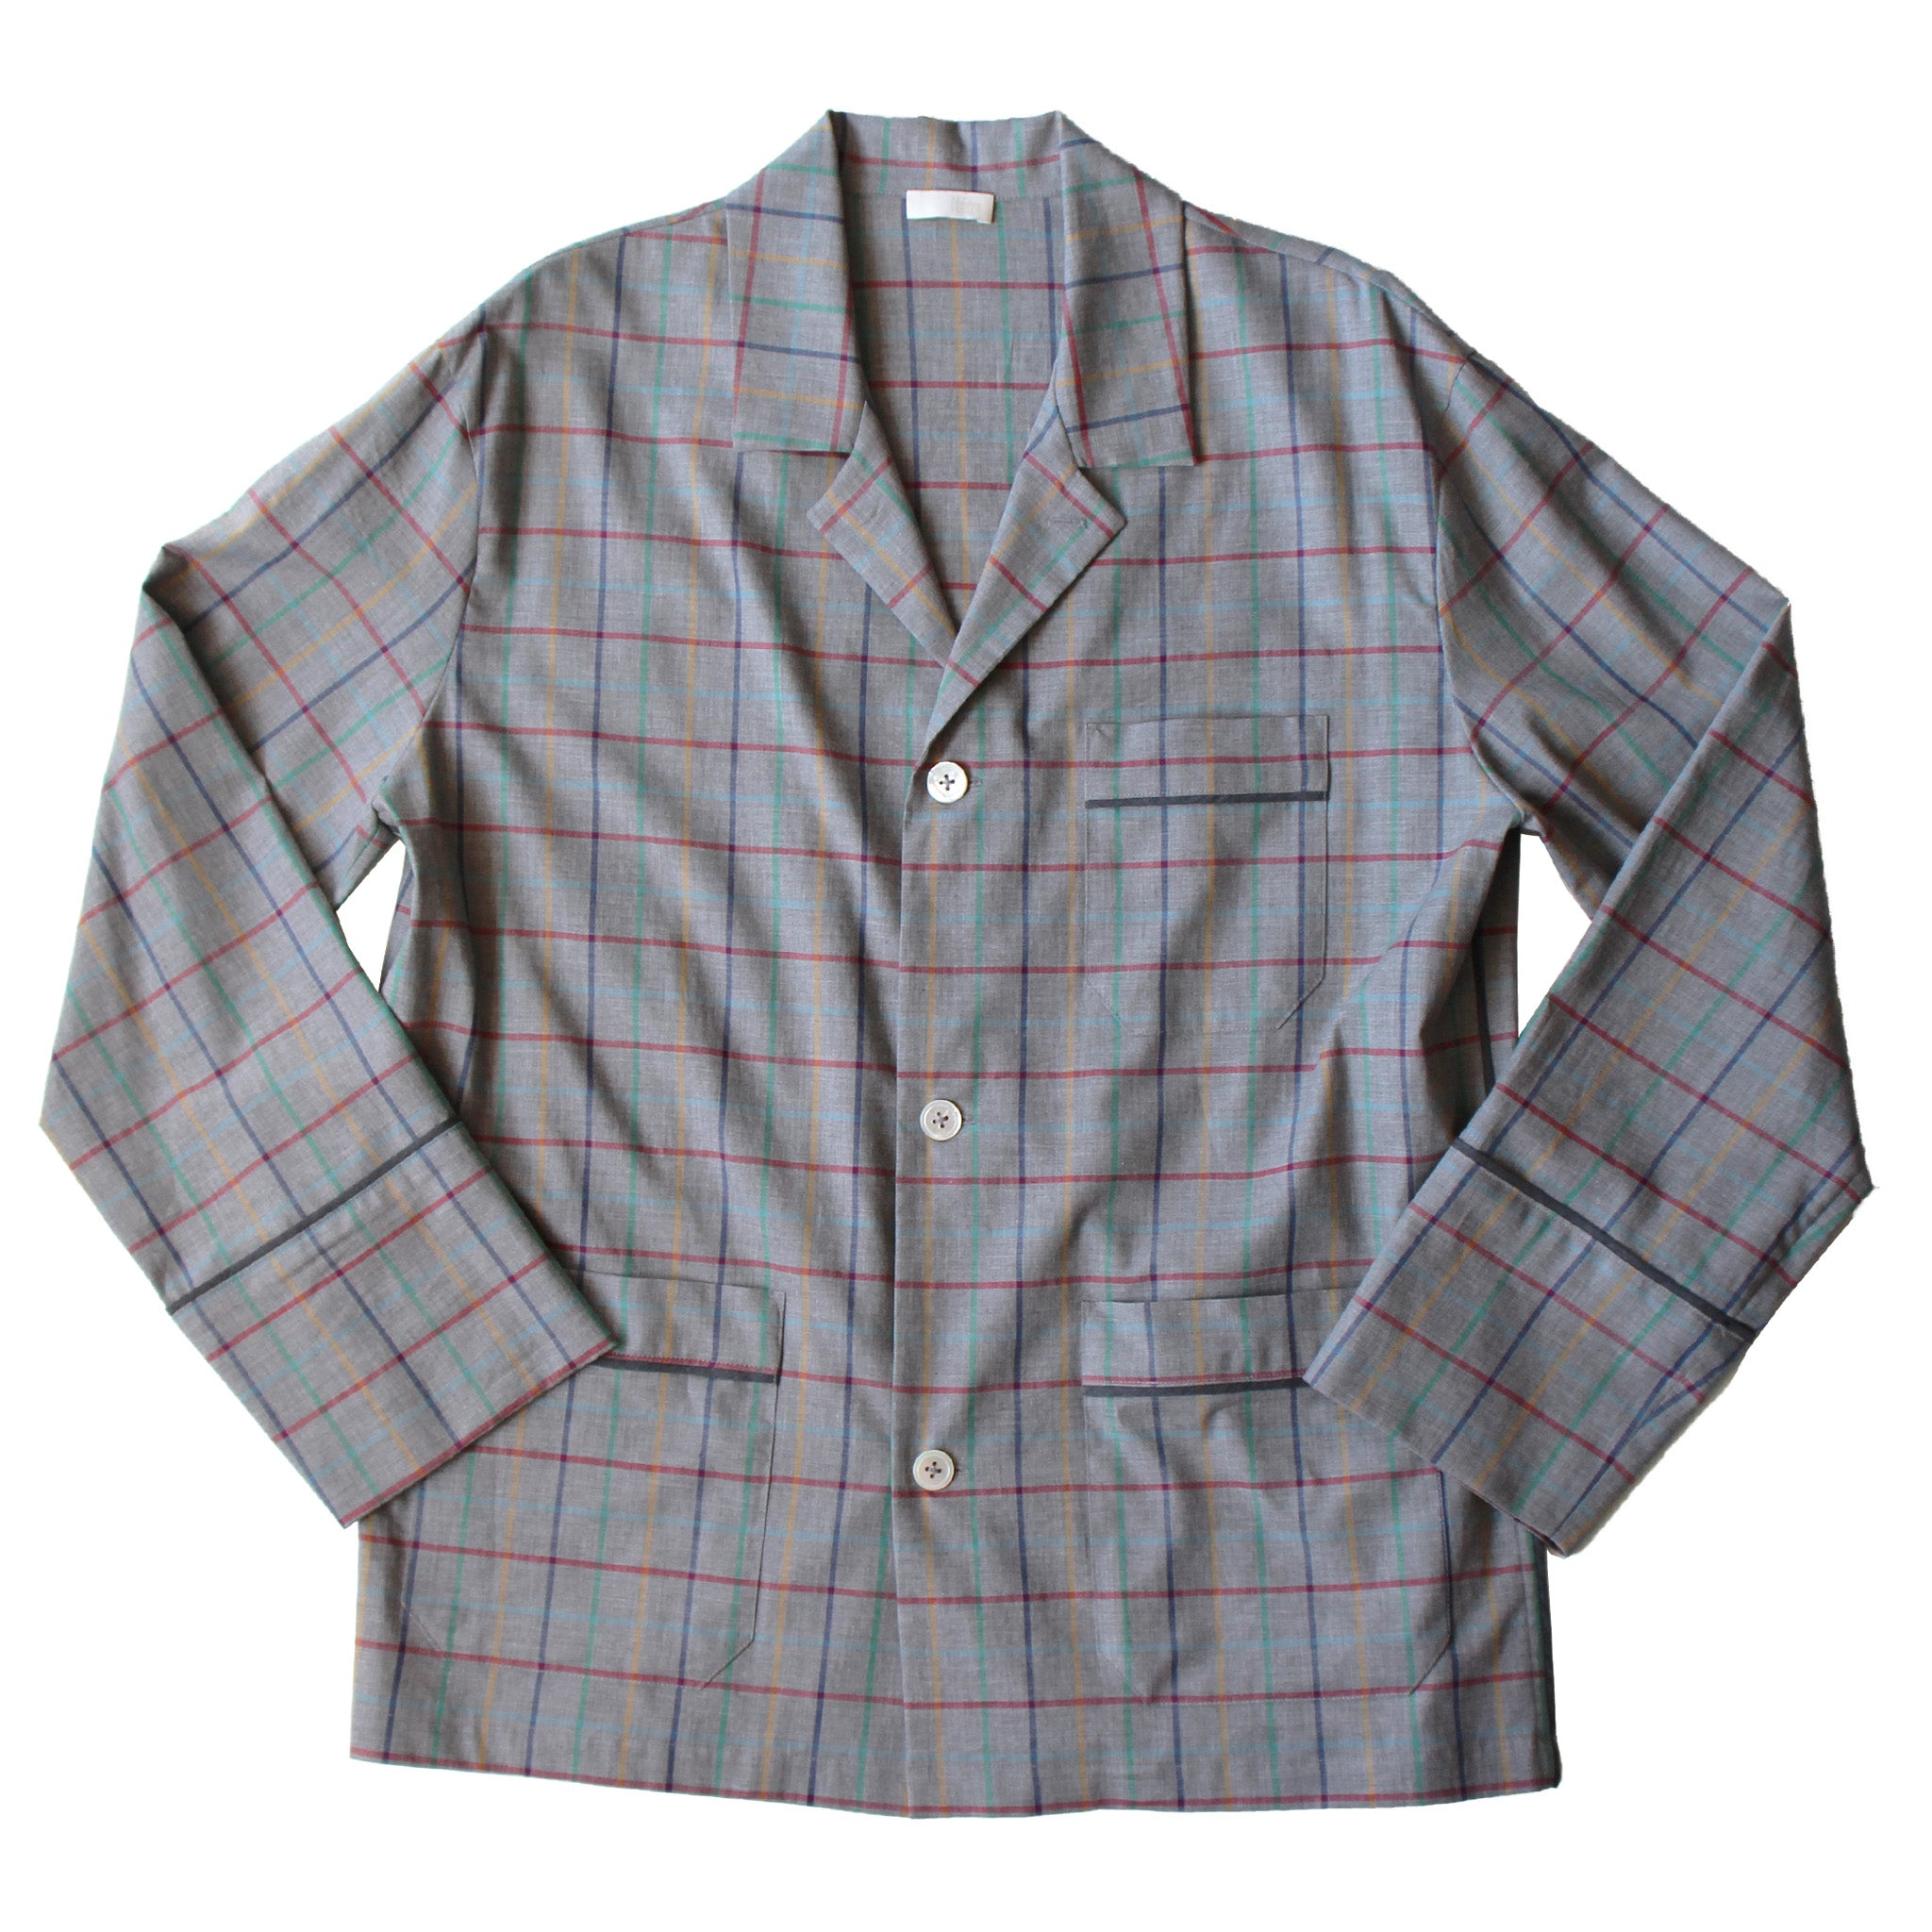 Hyperion Pajama Shirt in Grey Check Italian Cotton